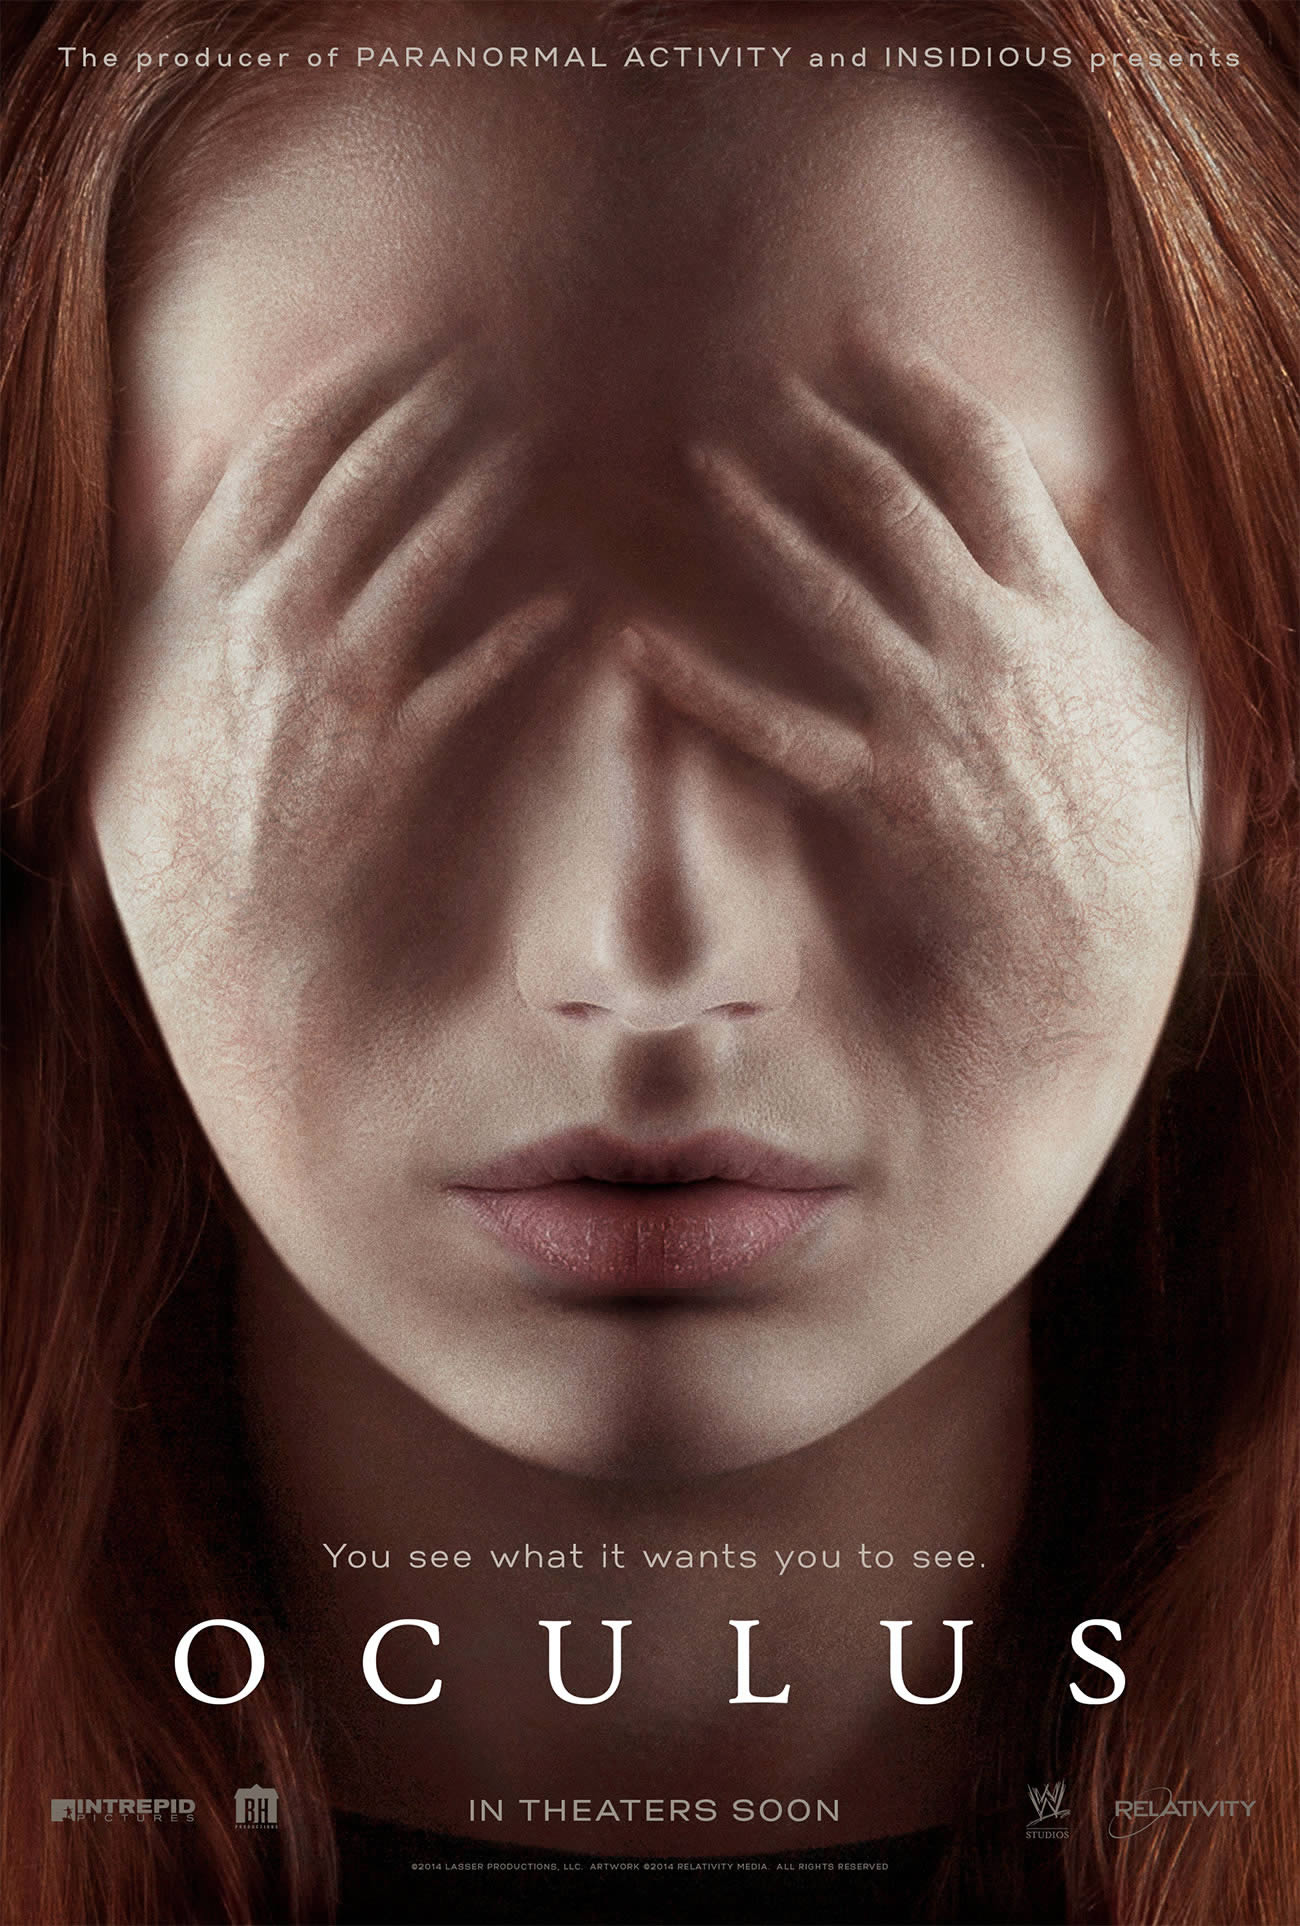 oculus movie poster, hands over eyes.